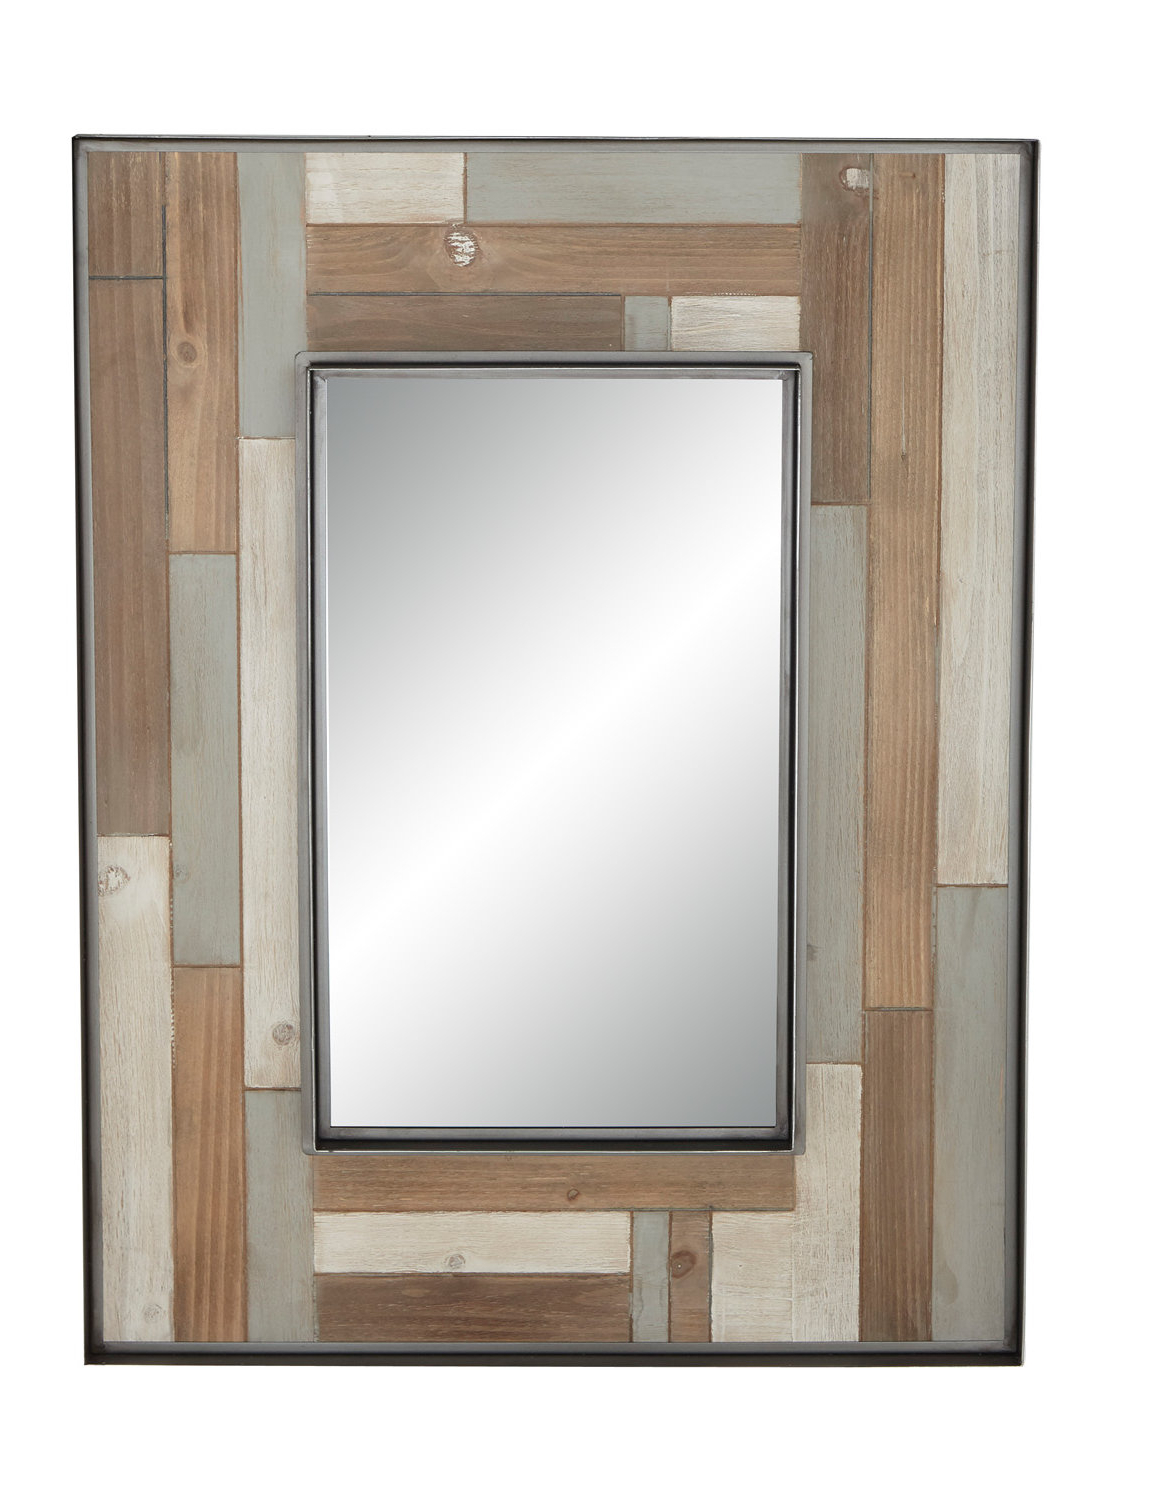 Berinhard Accent Mirrors With Widely Used Williamstown Rustic Rectangular Accent Mirror (View 11 of 20)